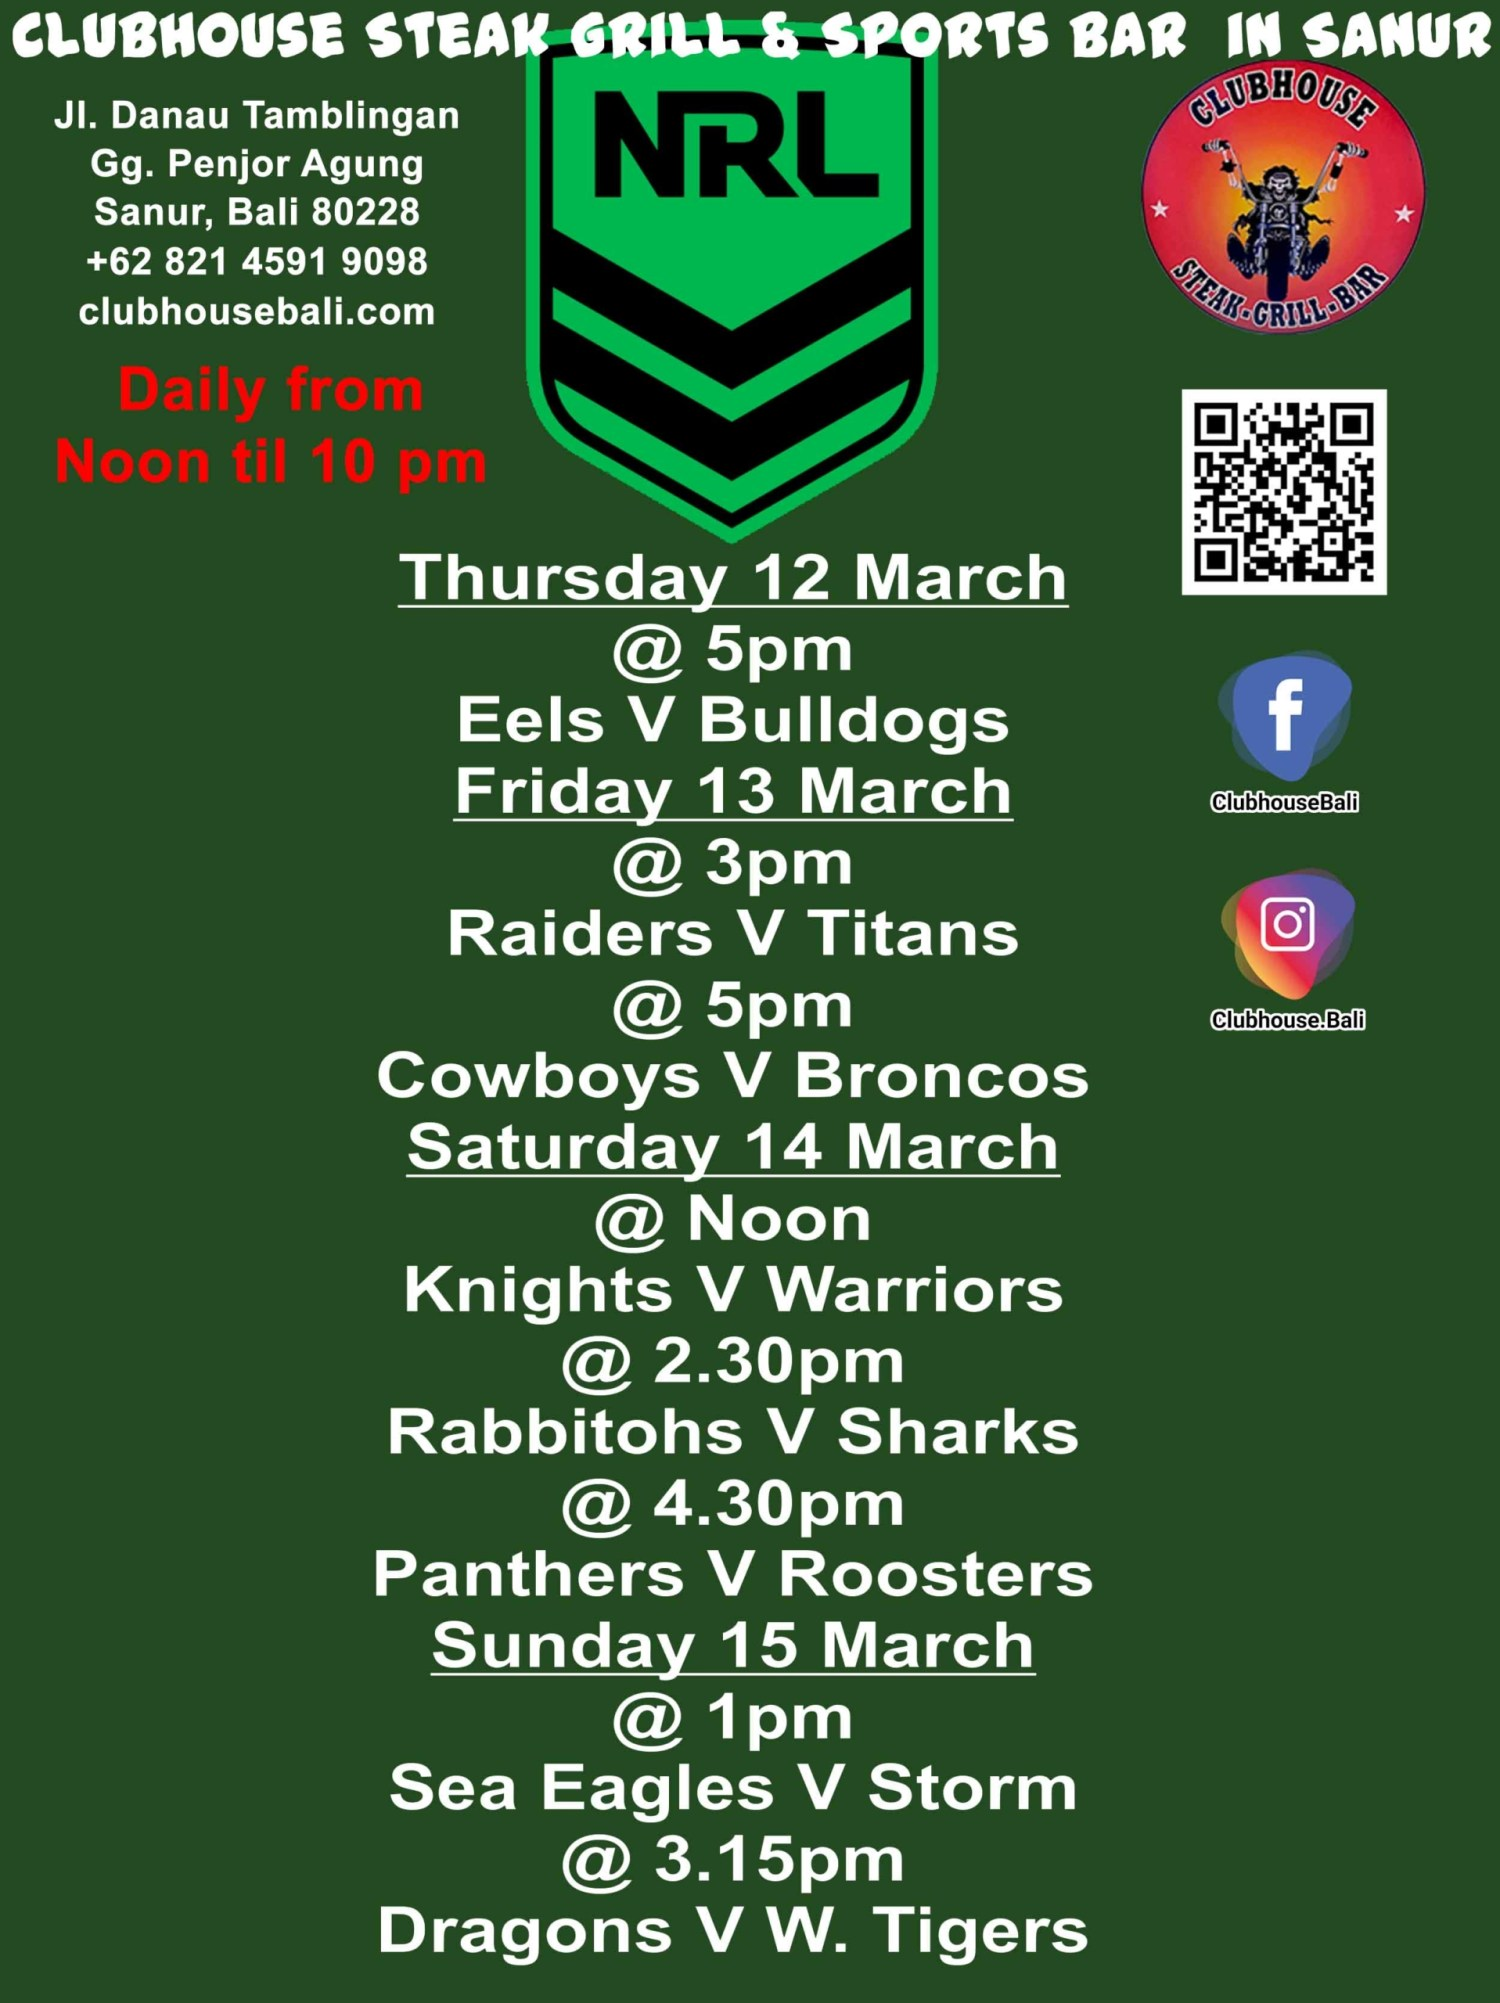 Clubhouse Steak Grill & Sports Bar Presents NRL